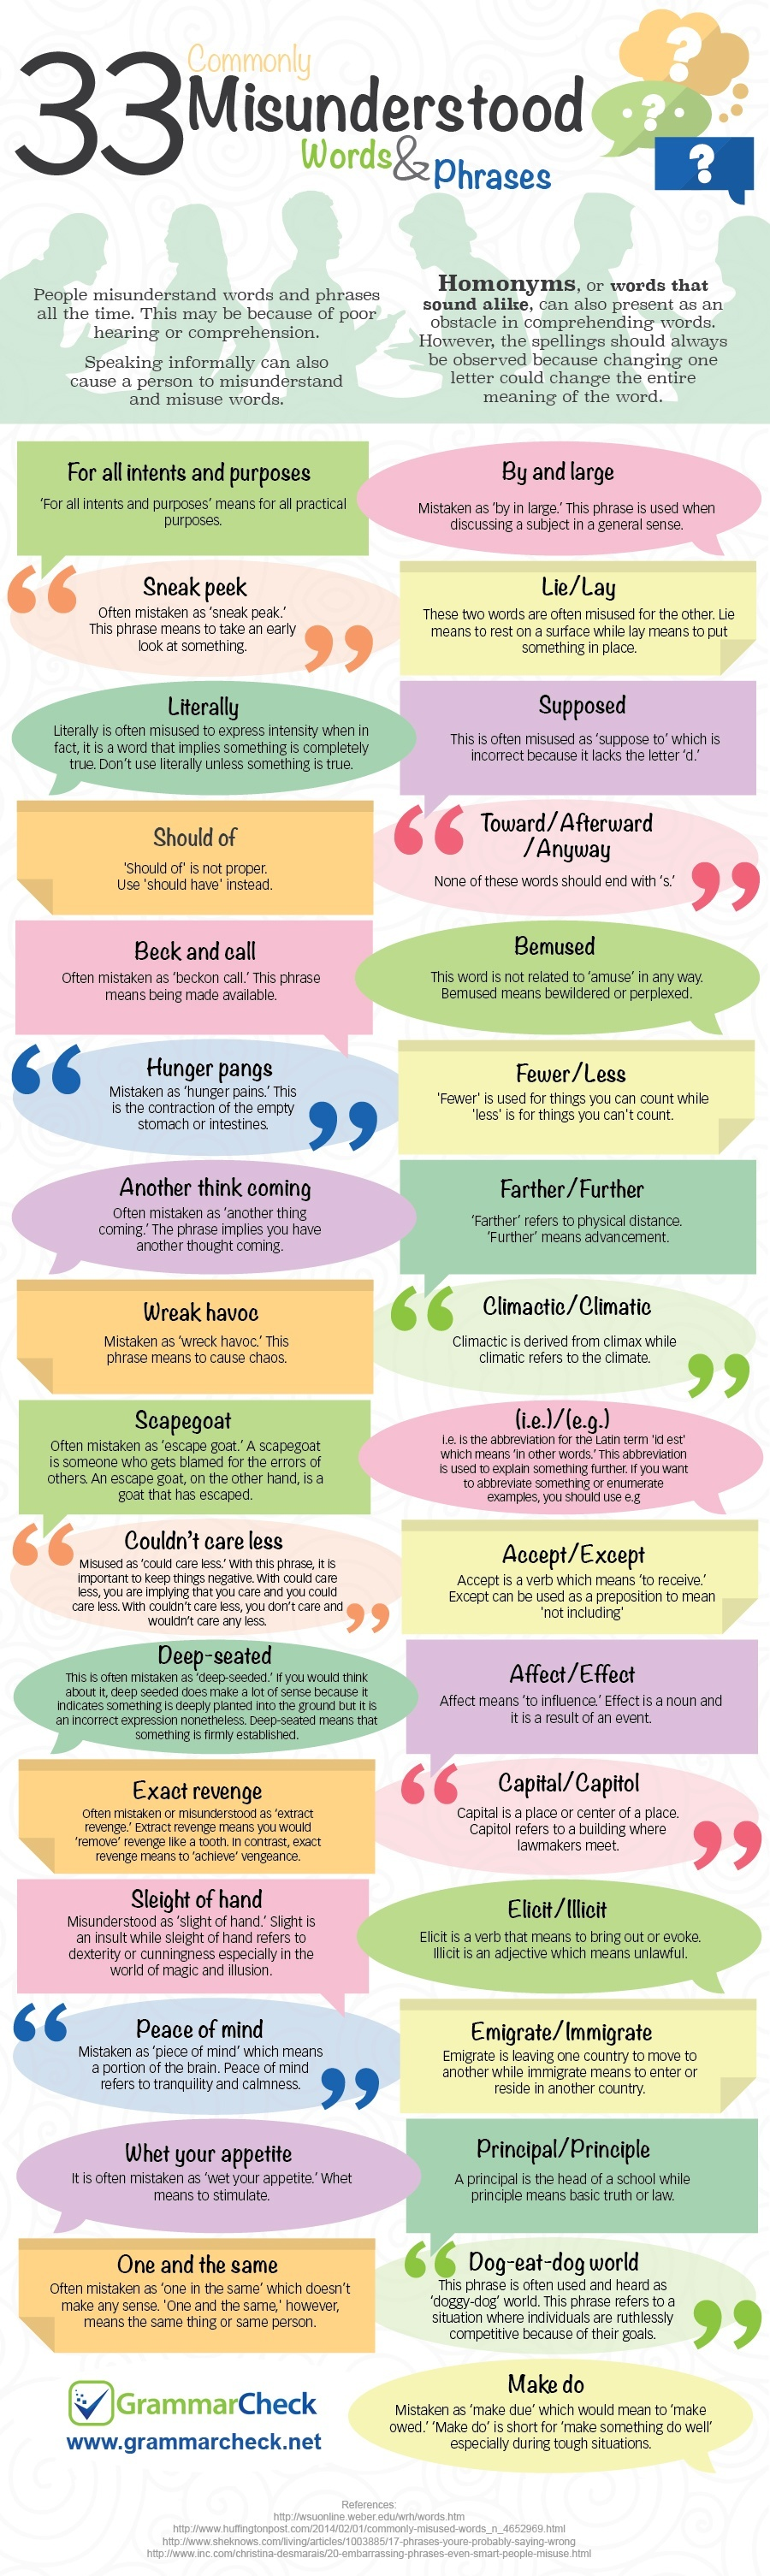 overused words in essays Yet again, kathy steinemann has provided writers with a useful tool, full of tips on how to edit your work, writing rules and how to interpret them, overused words and phrases and how to replace them, and much more.